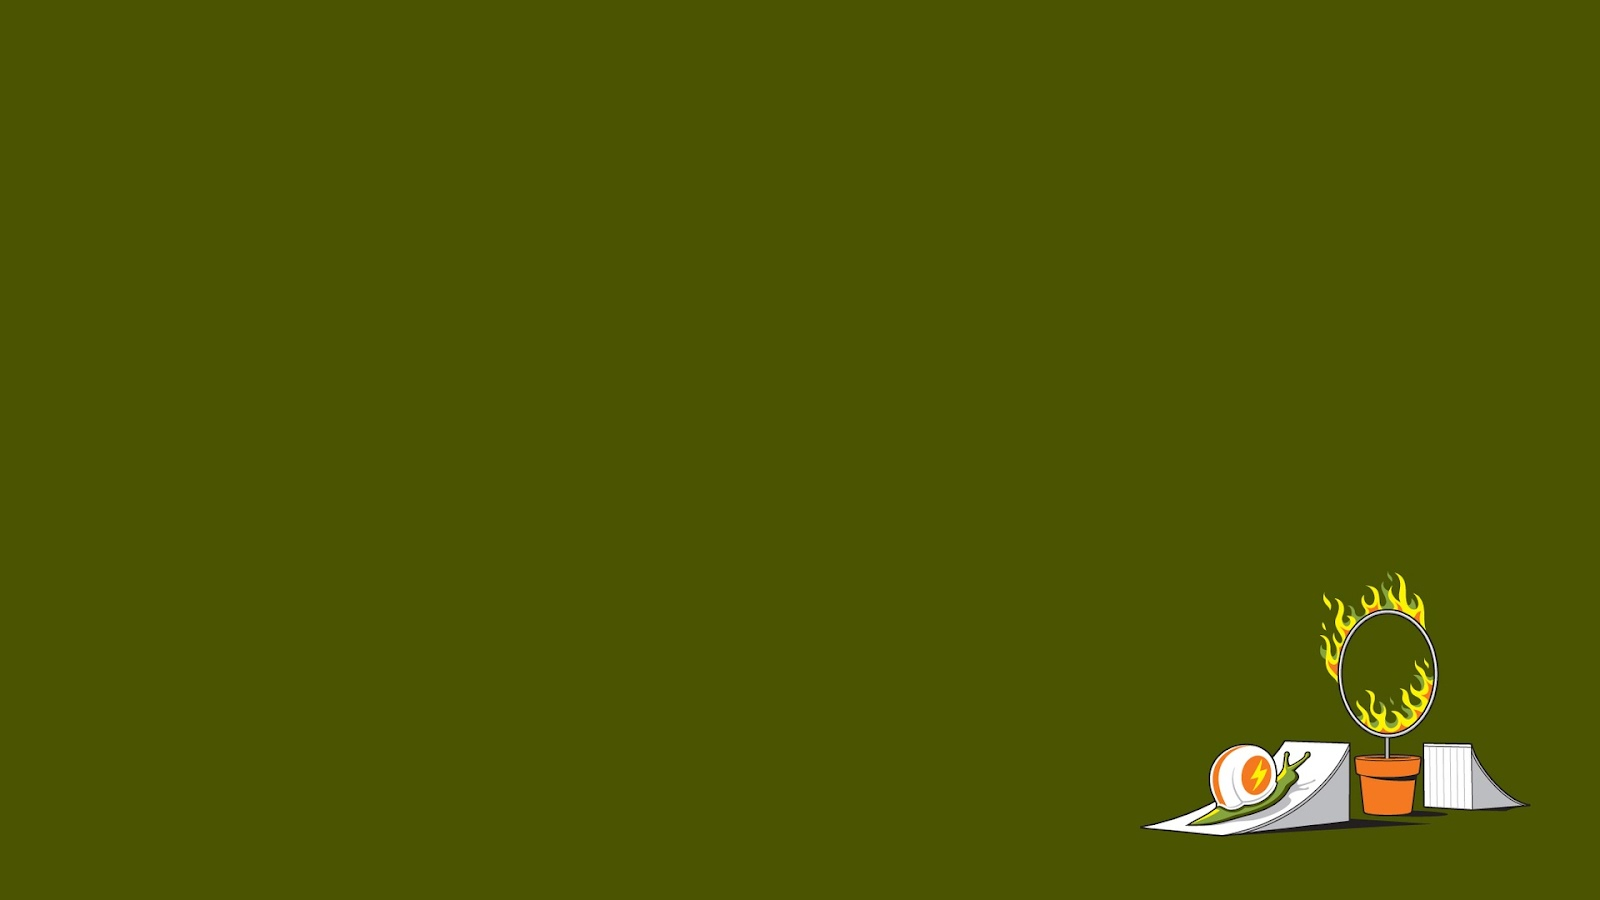 Wallpapers: List Nation Wallpapers: 33 Minimalist Funny Wallpapers